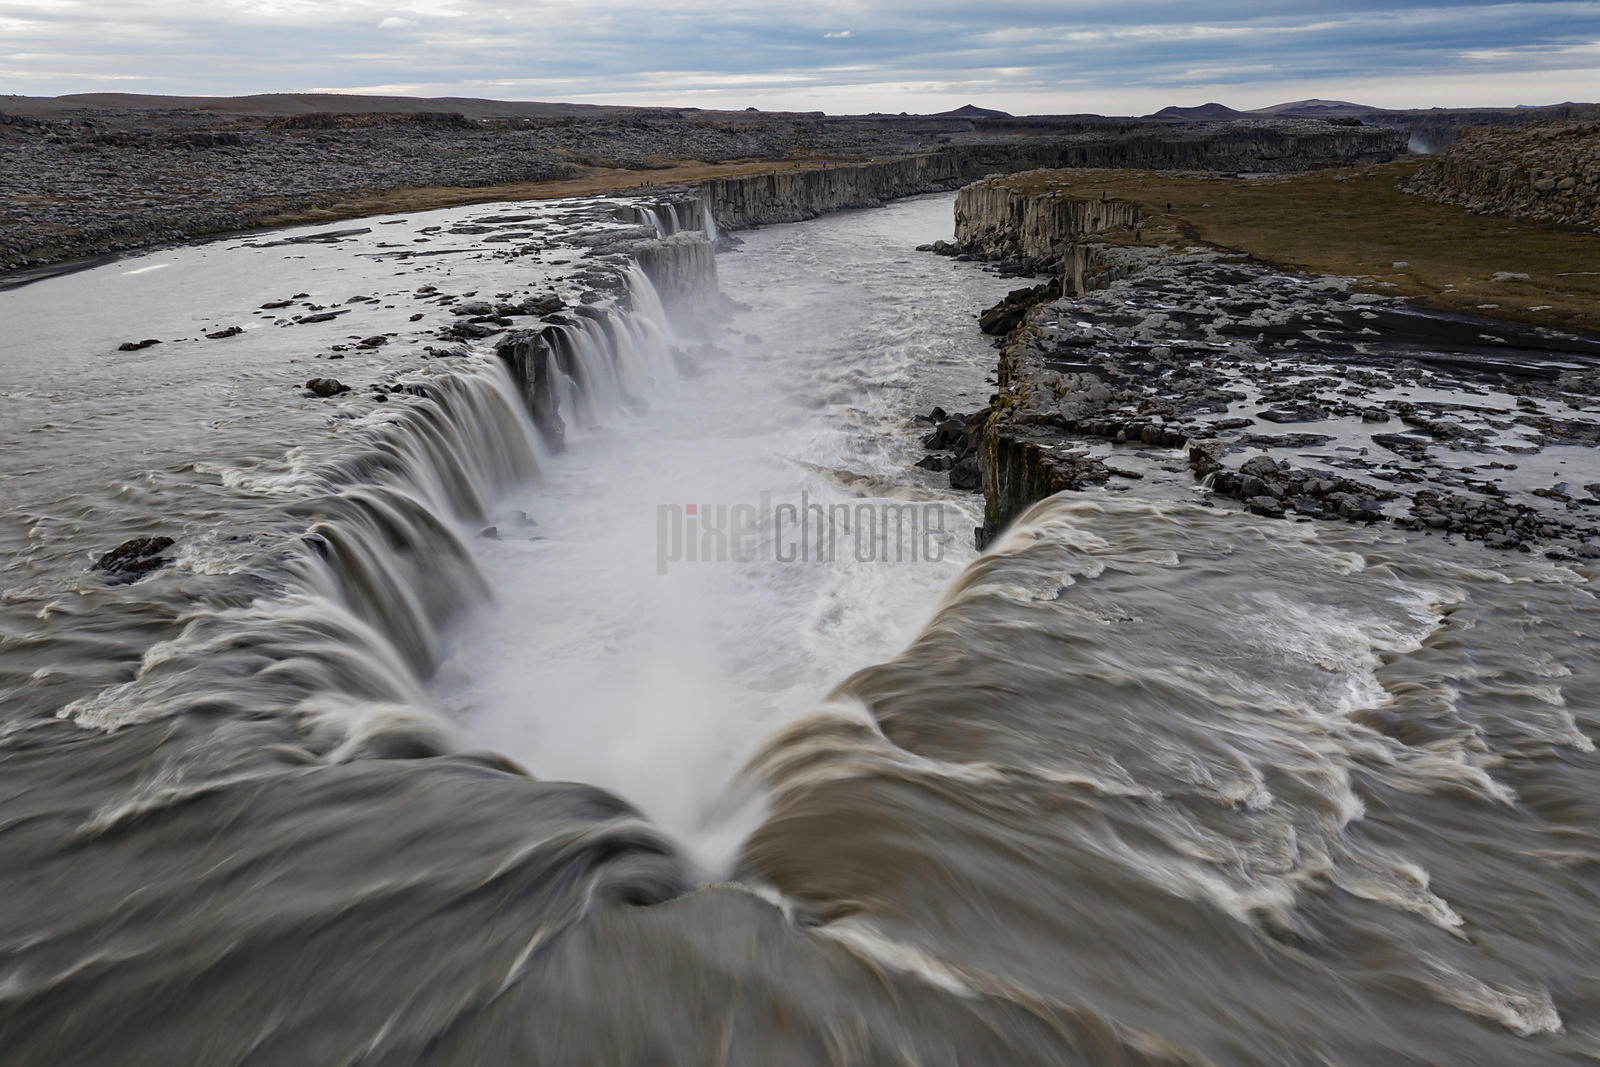 View of Selfoss Looking Down River